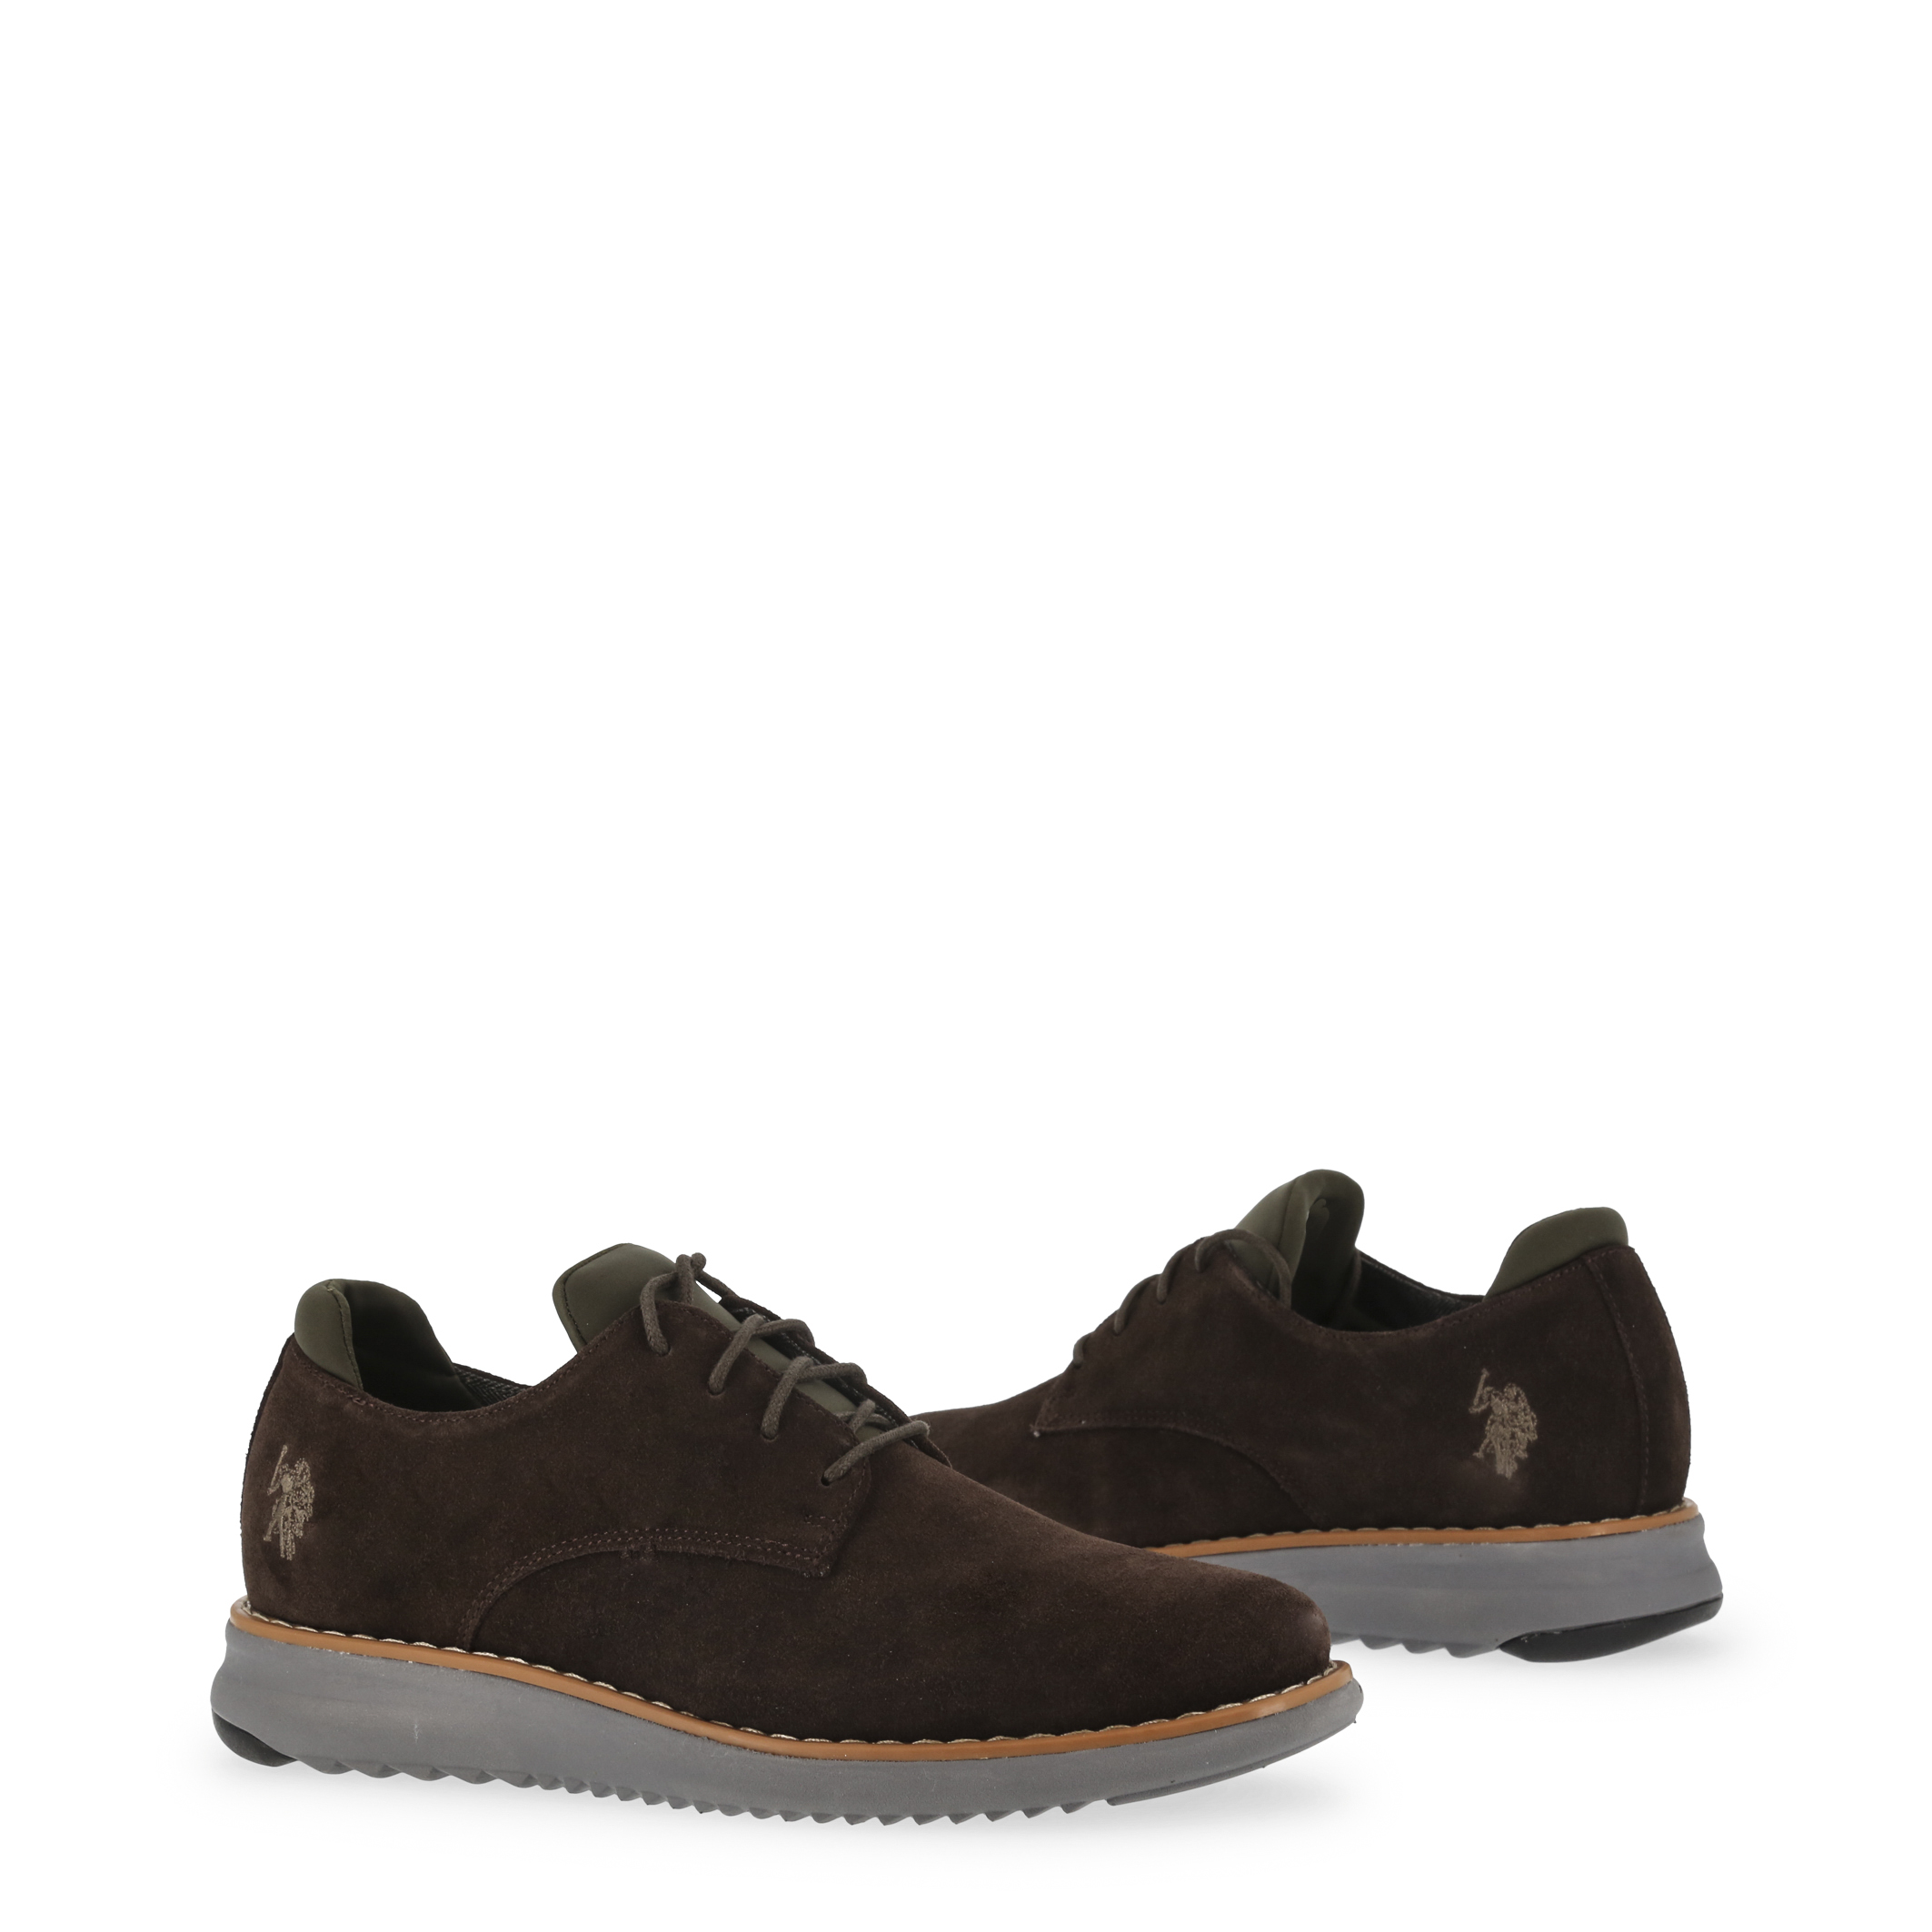 U-S-Polo-Assn-Men-039-s-Lace-Up-In-Brown-44 thumbnail 2